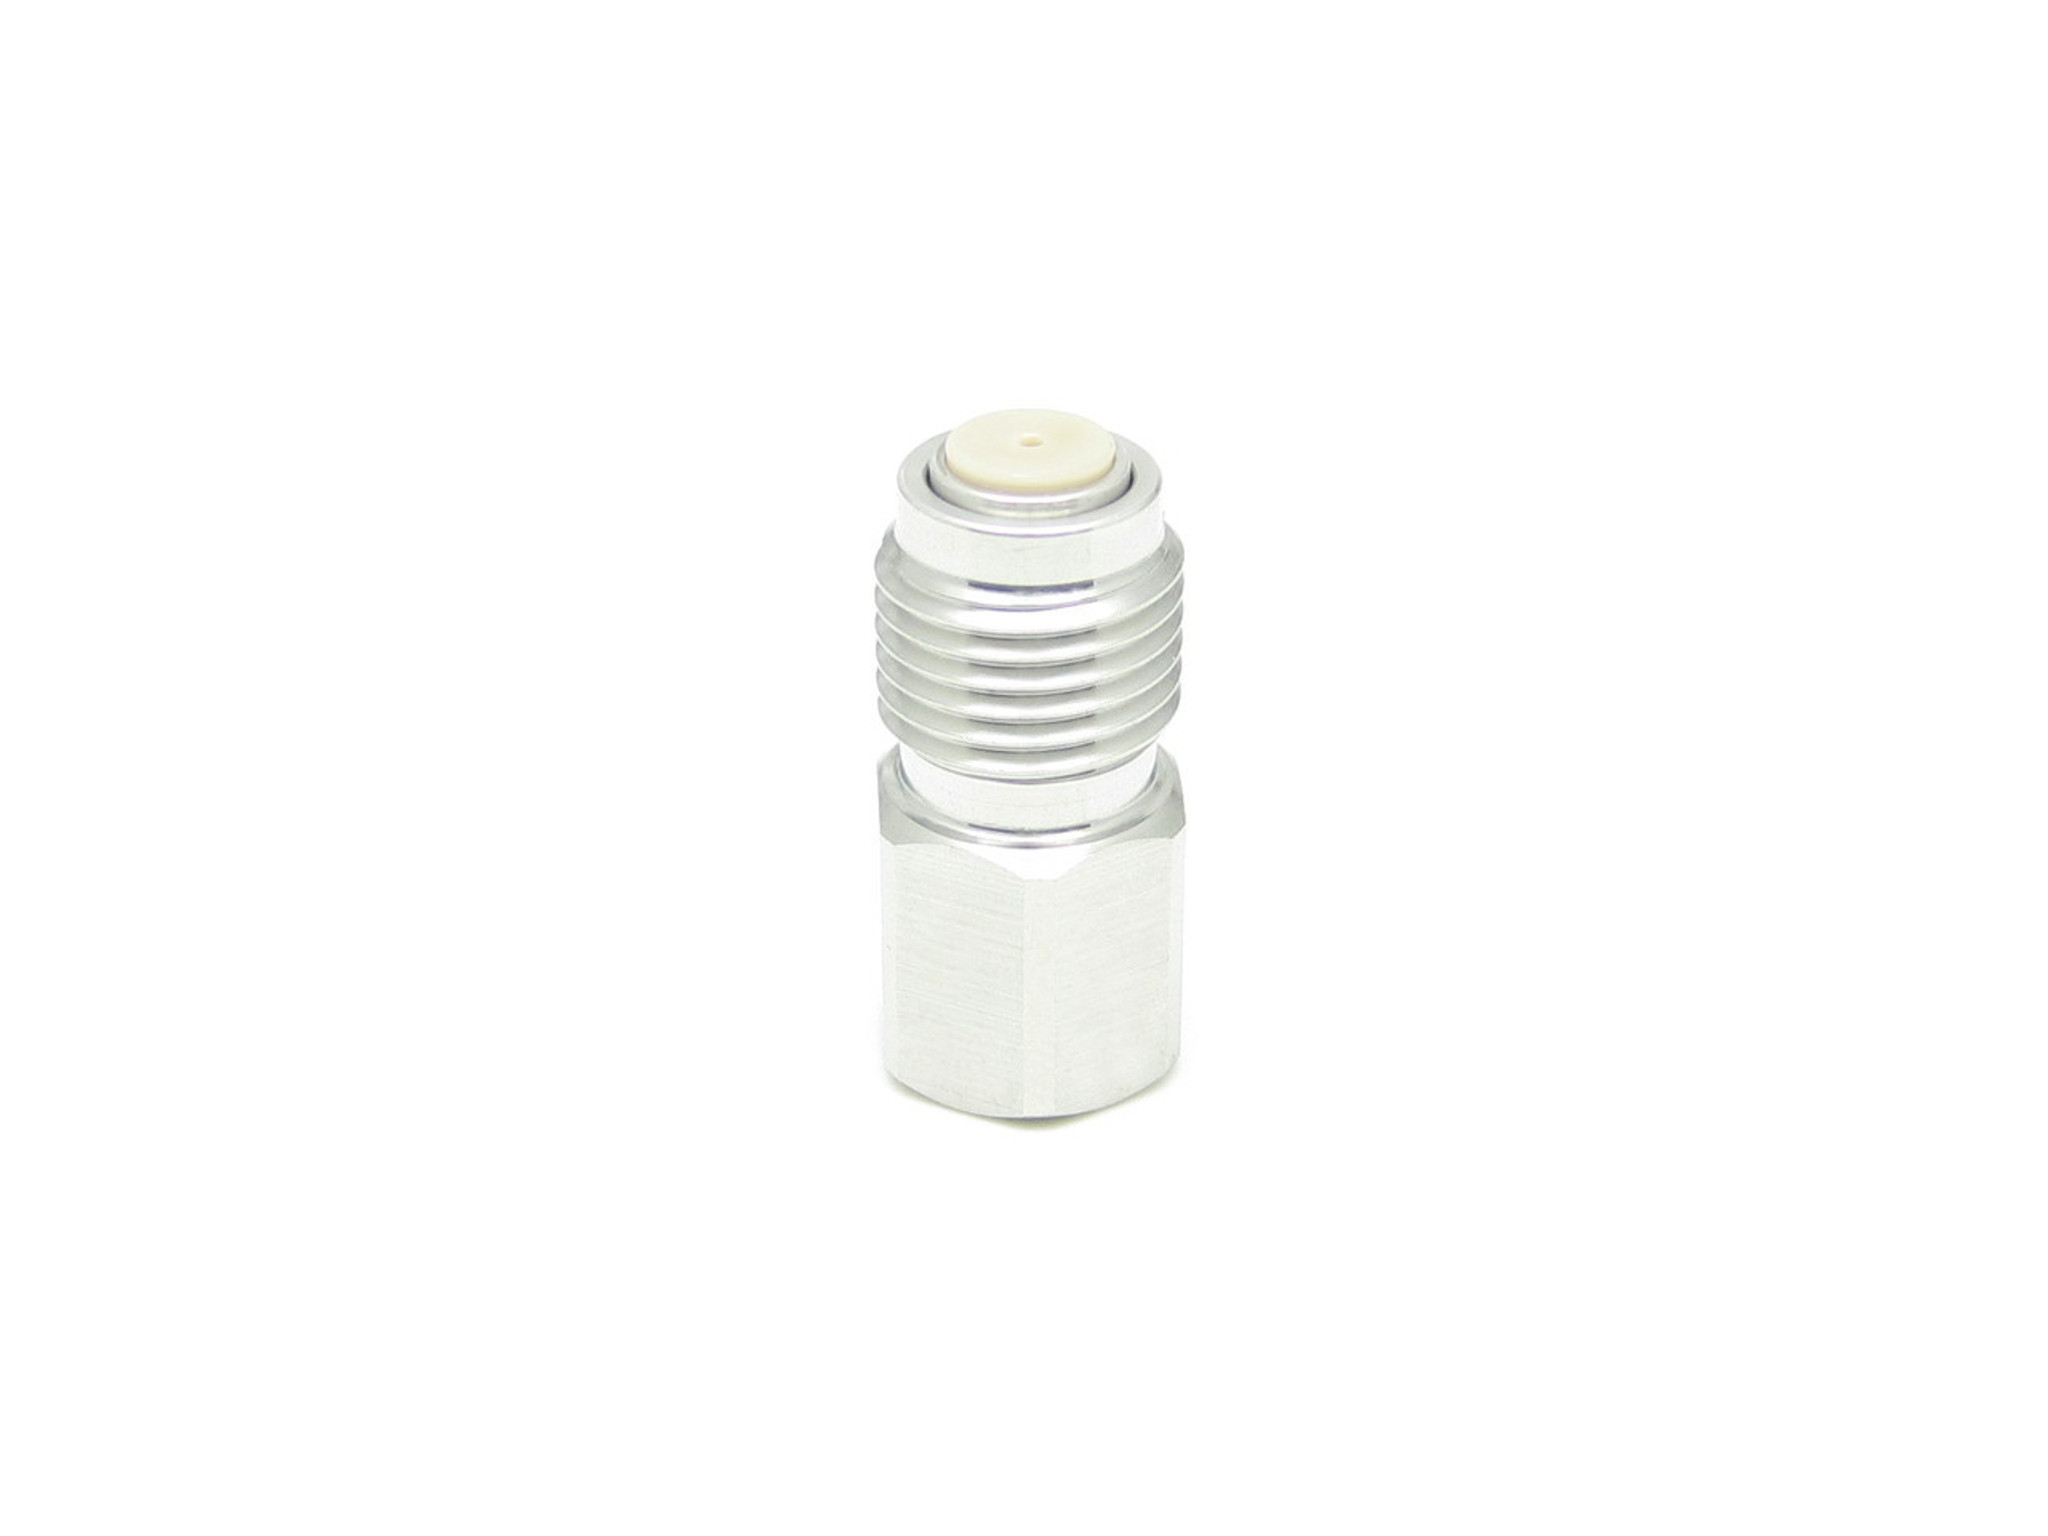 Inlet Check Valve Assembly, Shimadzu LC-10ADvp, LC-20AB, LC-20AD,  LC-20ADXR, LC-20AT (Secondary inlet), LC-20ADsp, LC-20ADnano, LC-30ADSF,